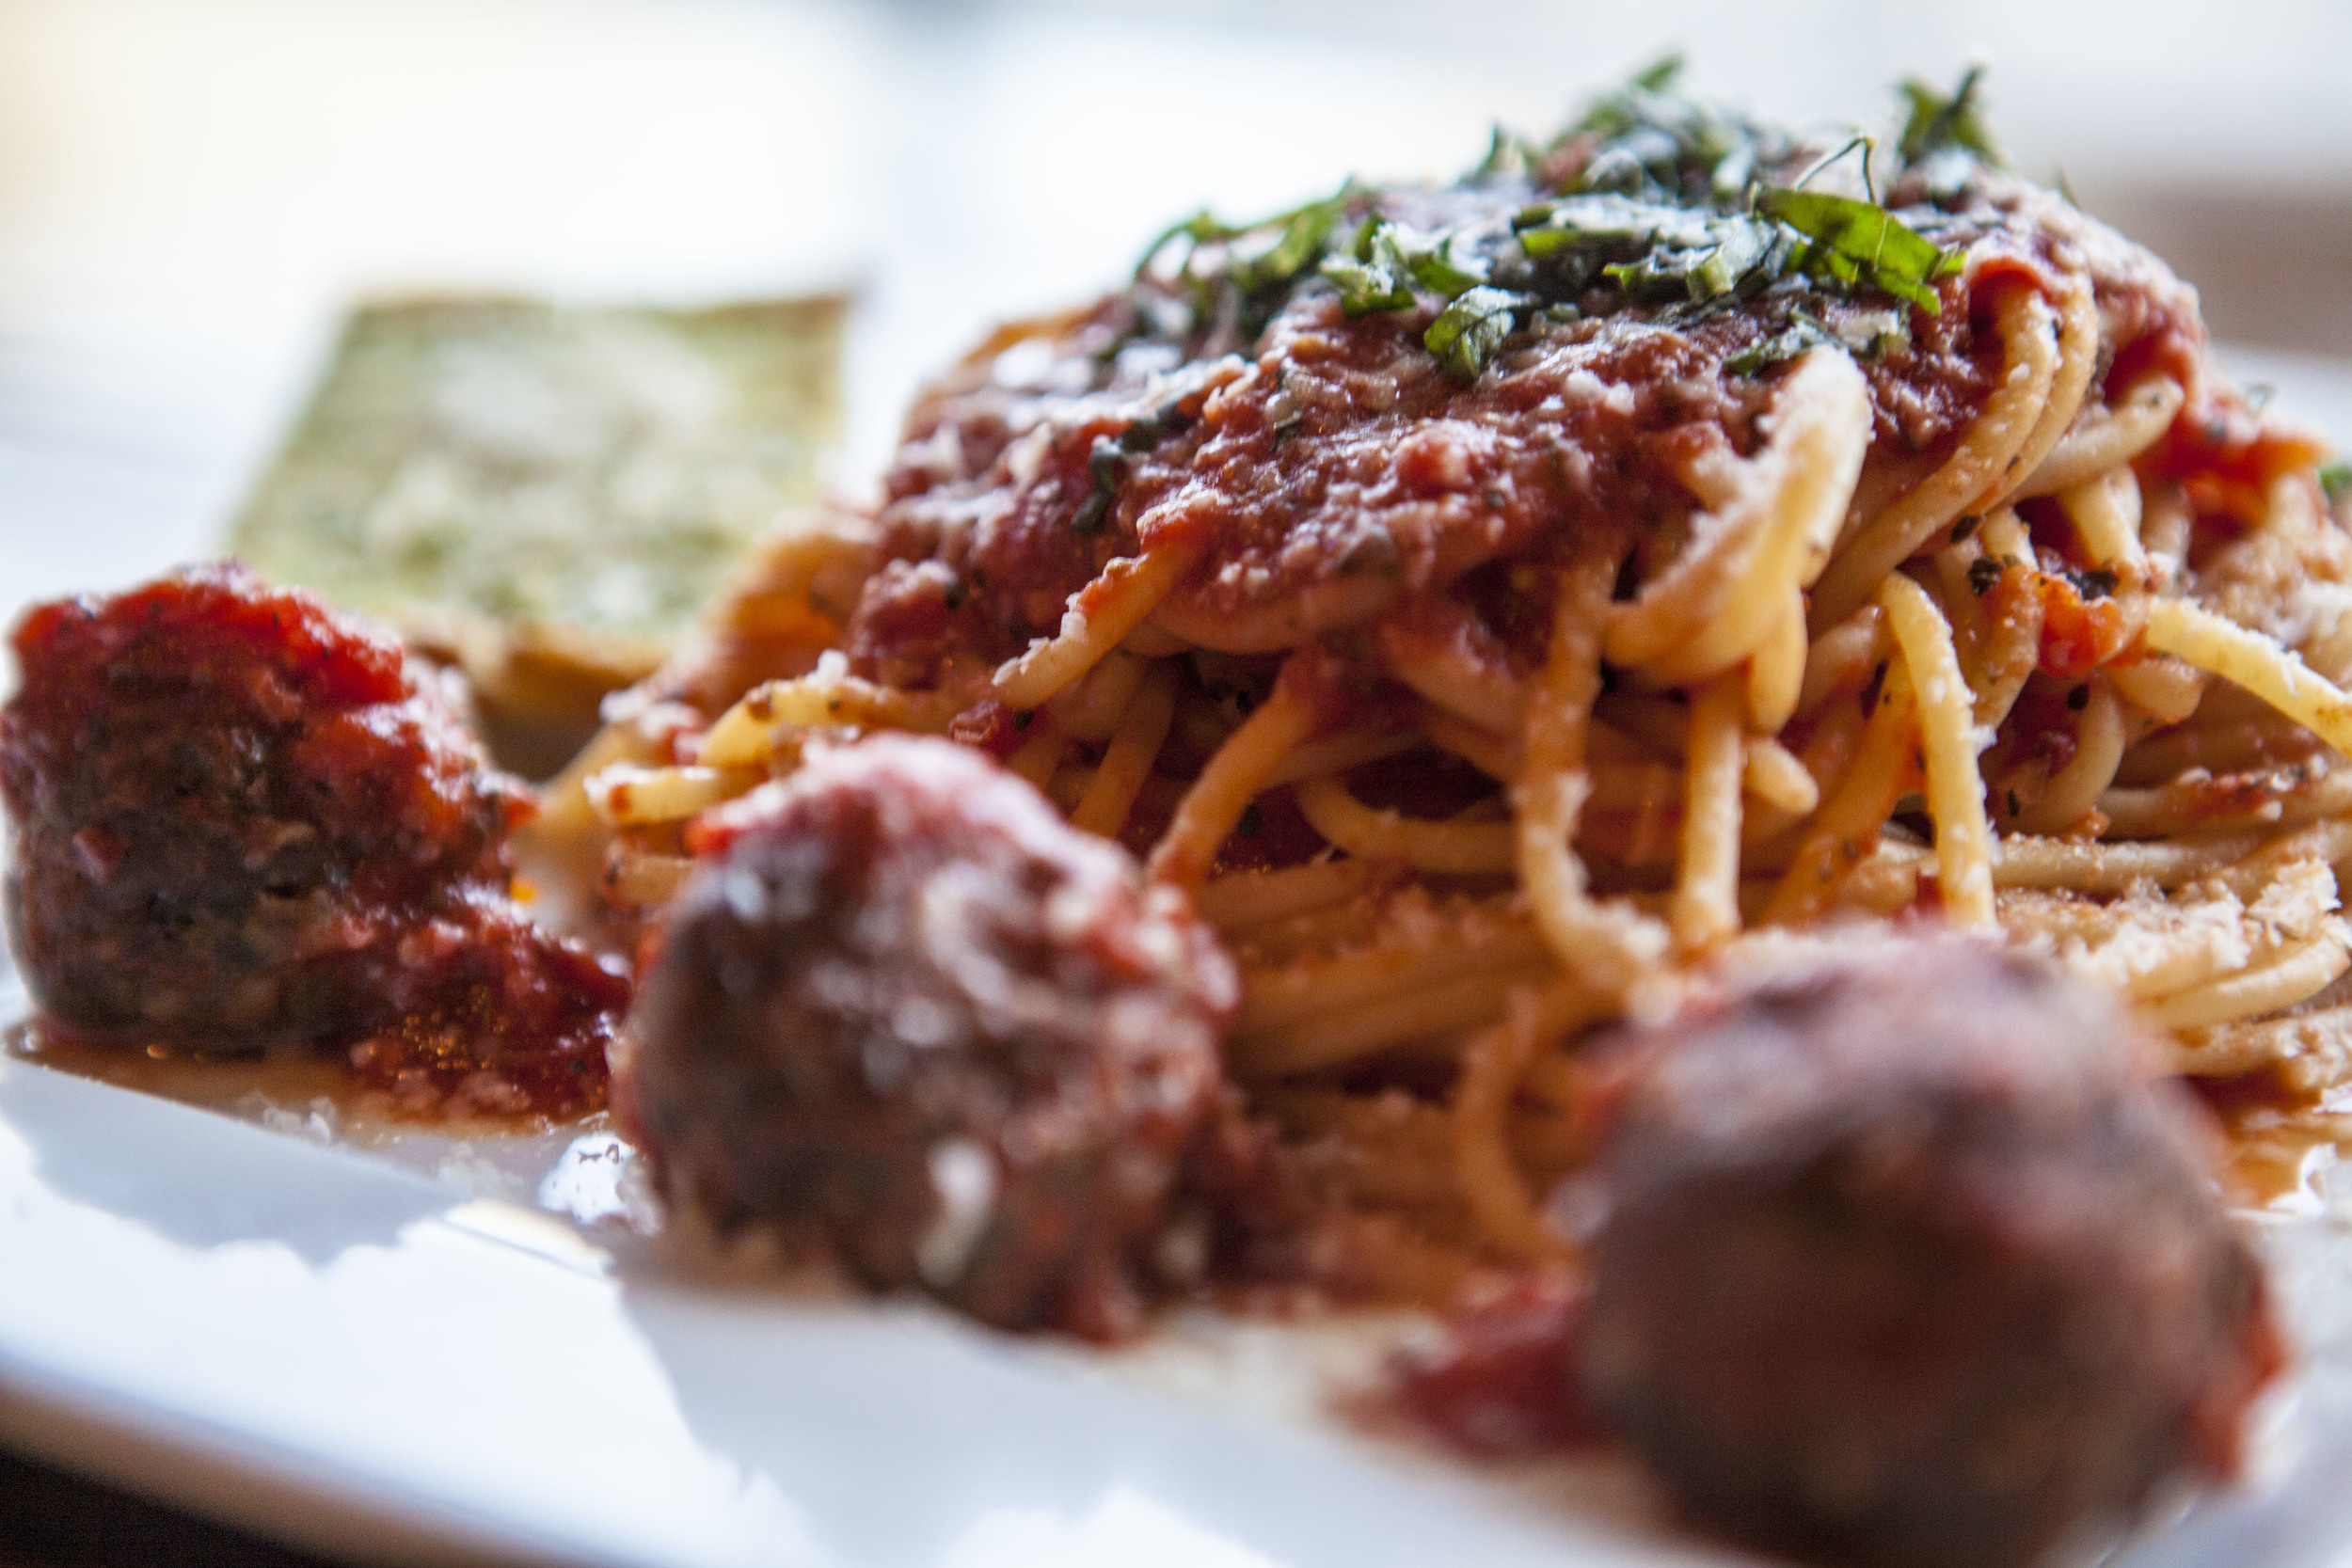 S paghetti With Meatballs - YUM!